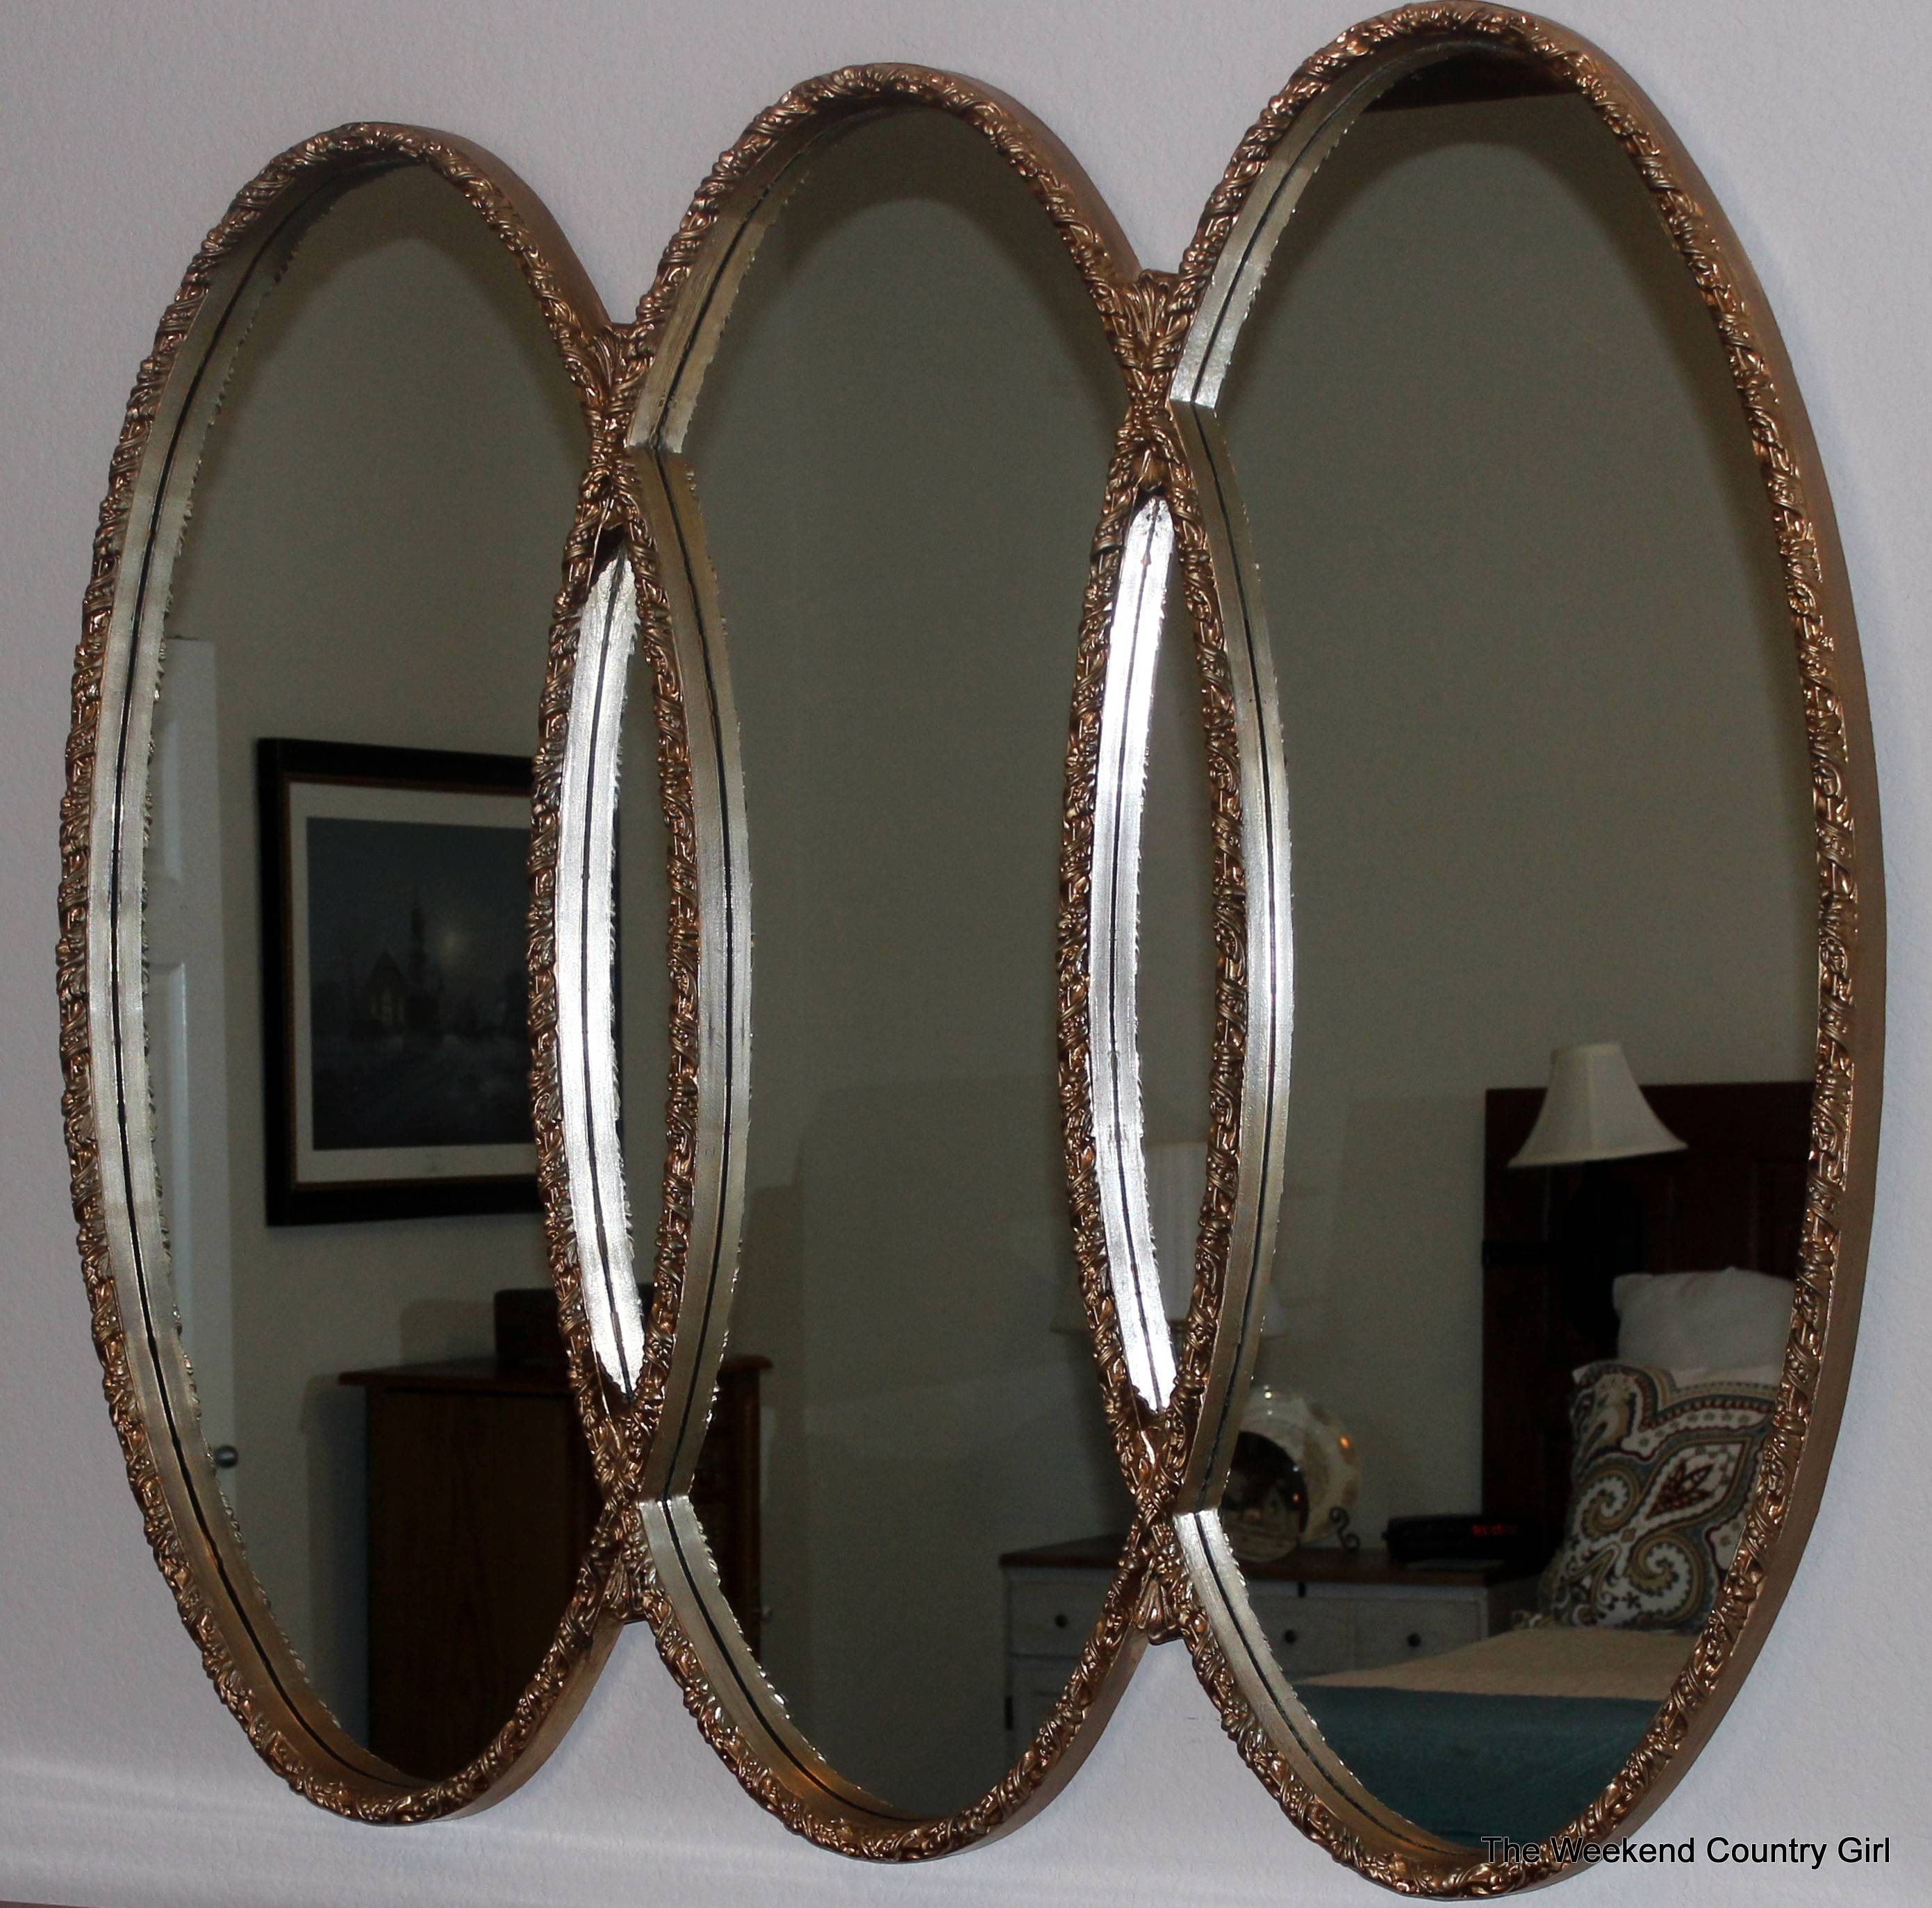 Repurposing A Mirror | The Weekend Country Girl within Triple Oval Wall Mirrors (Image 18 of 25)